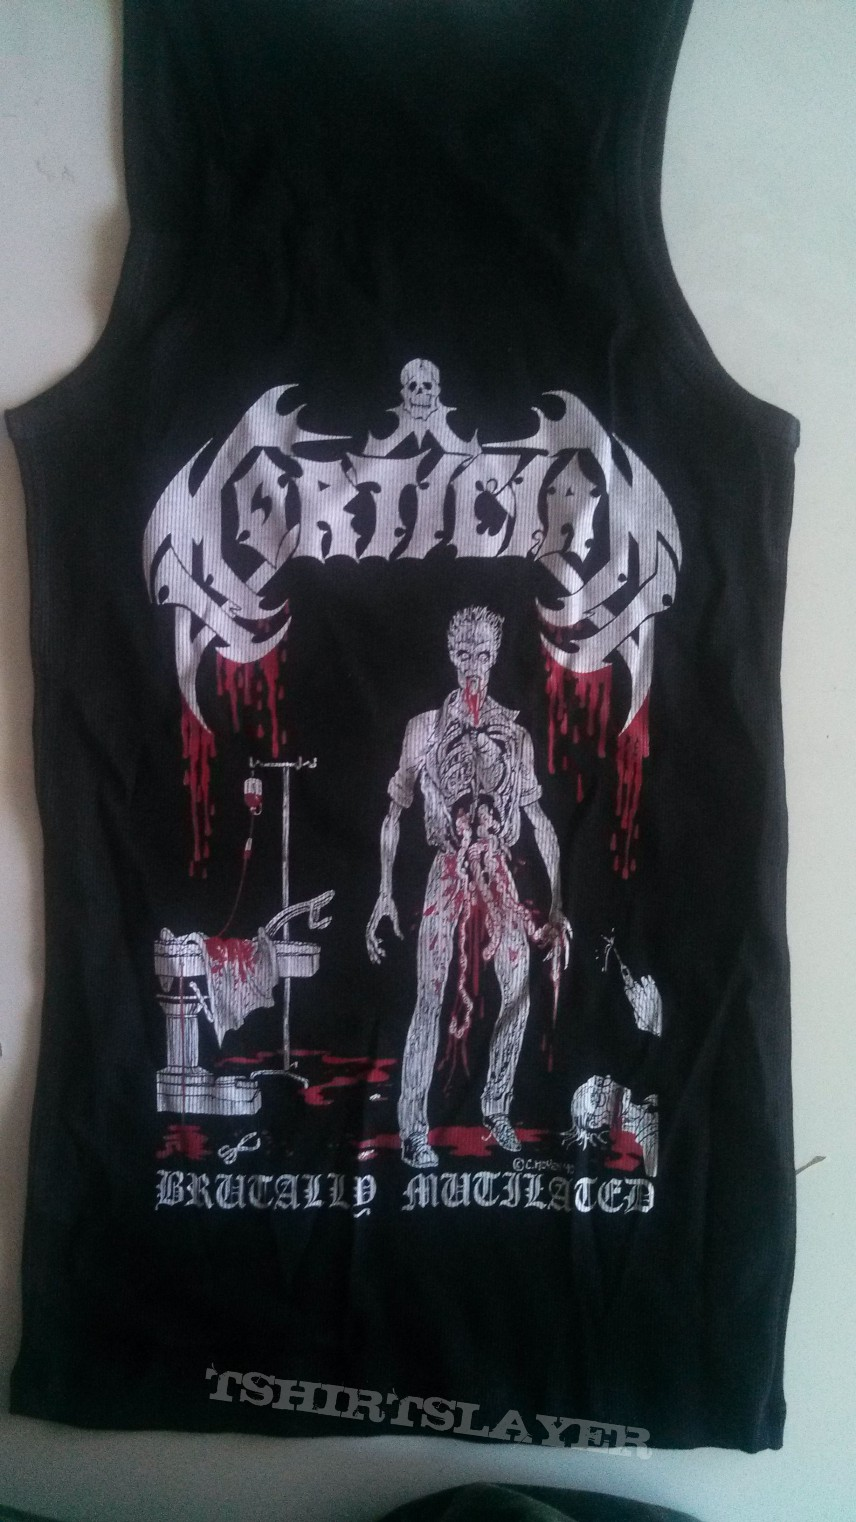 Mortician - Brutally Mutilated Muscle Shirt